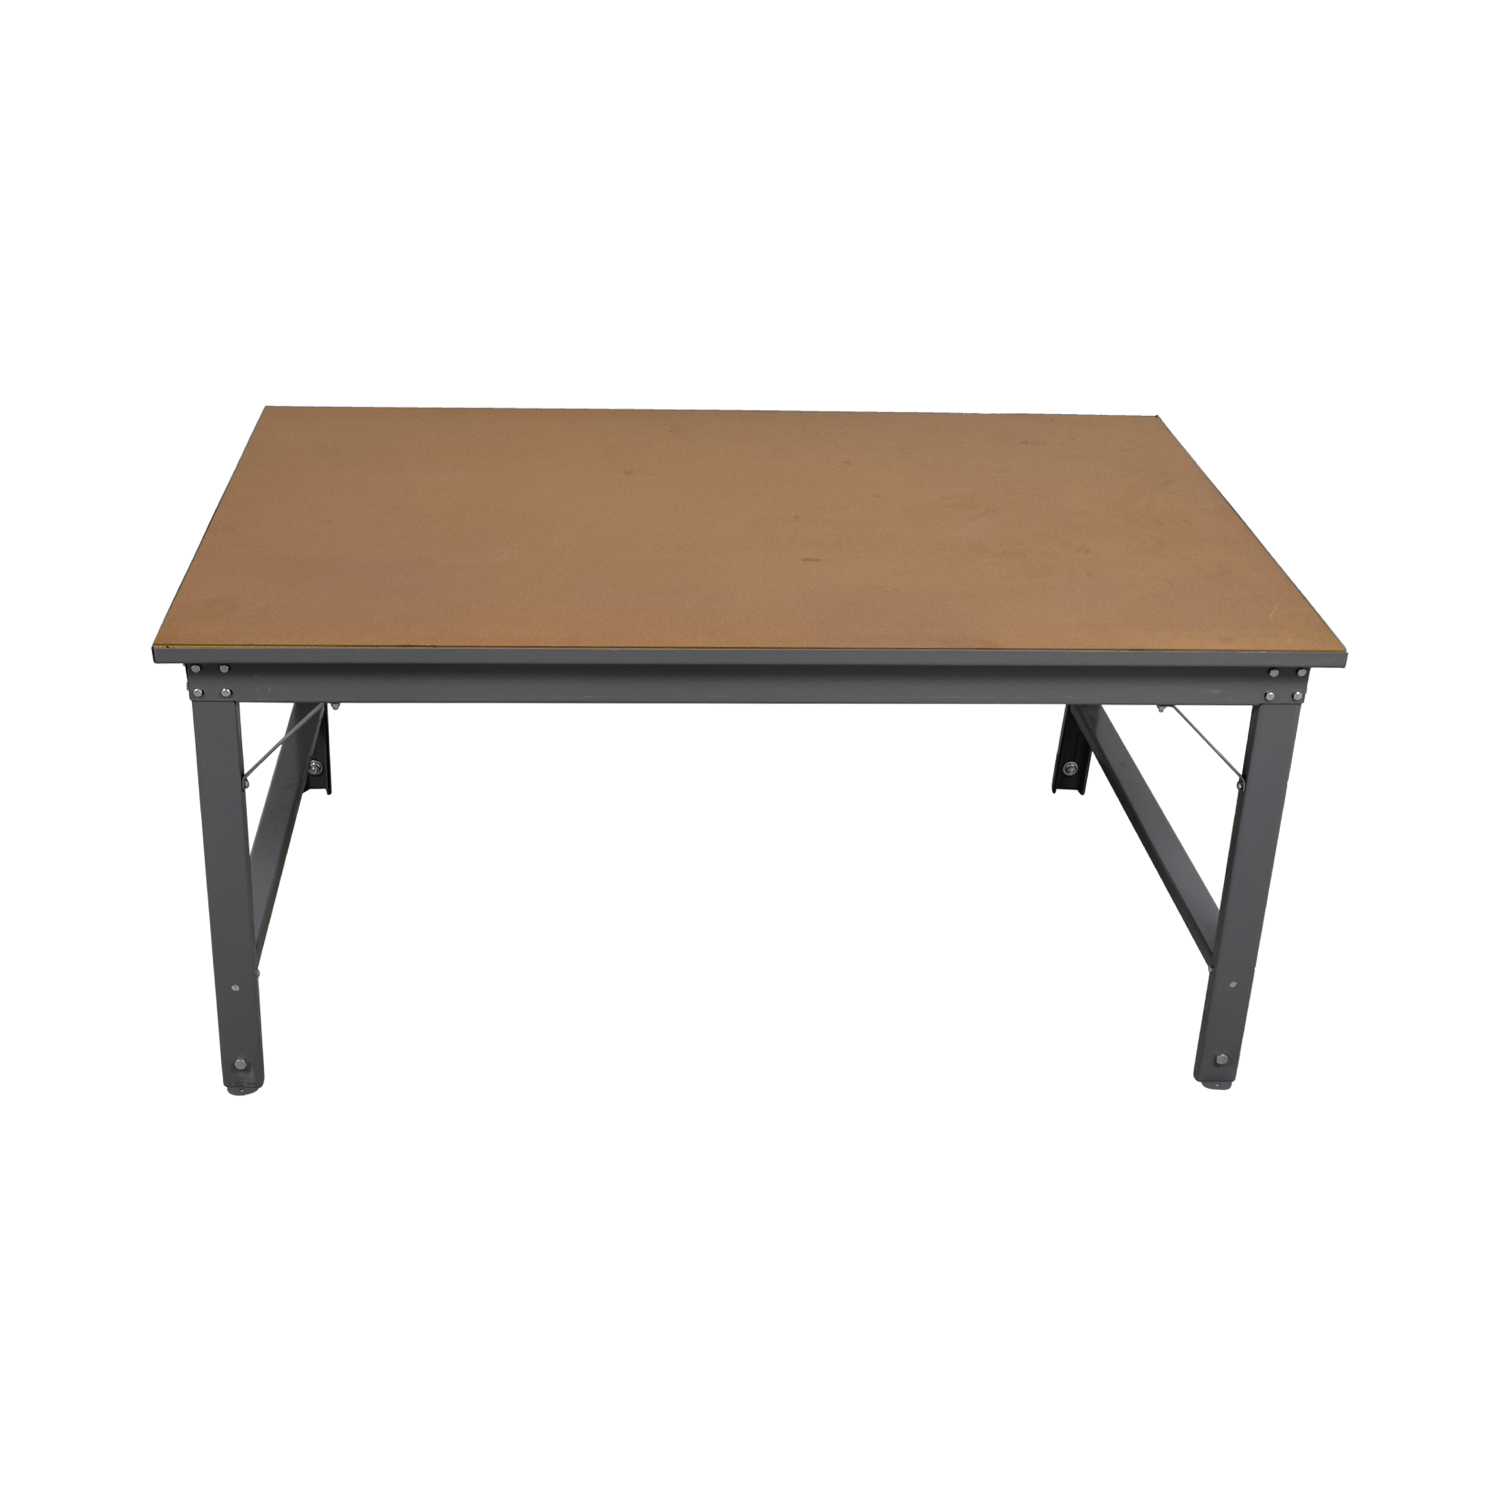 Southstar Supply Southstar Supply Industrial Tan Workshop Table second hand